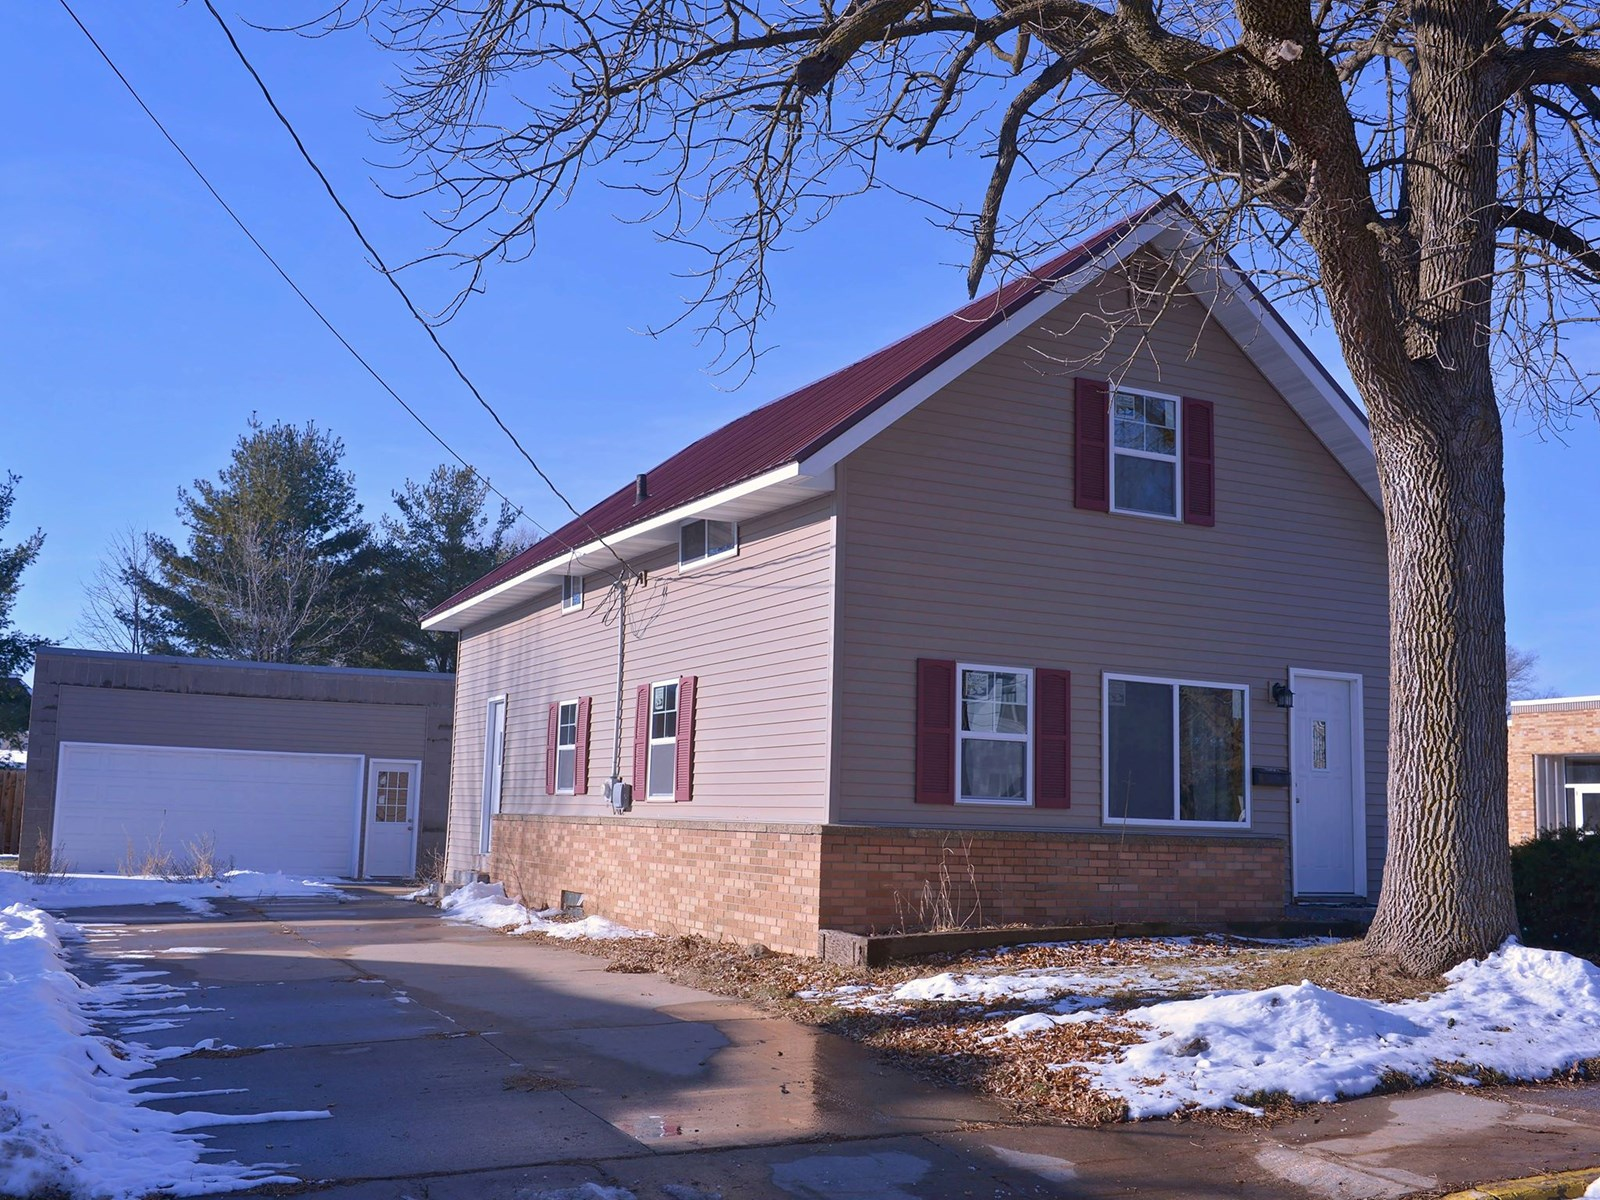 Home for Sale in Clintonville, WI